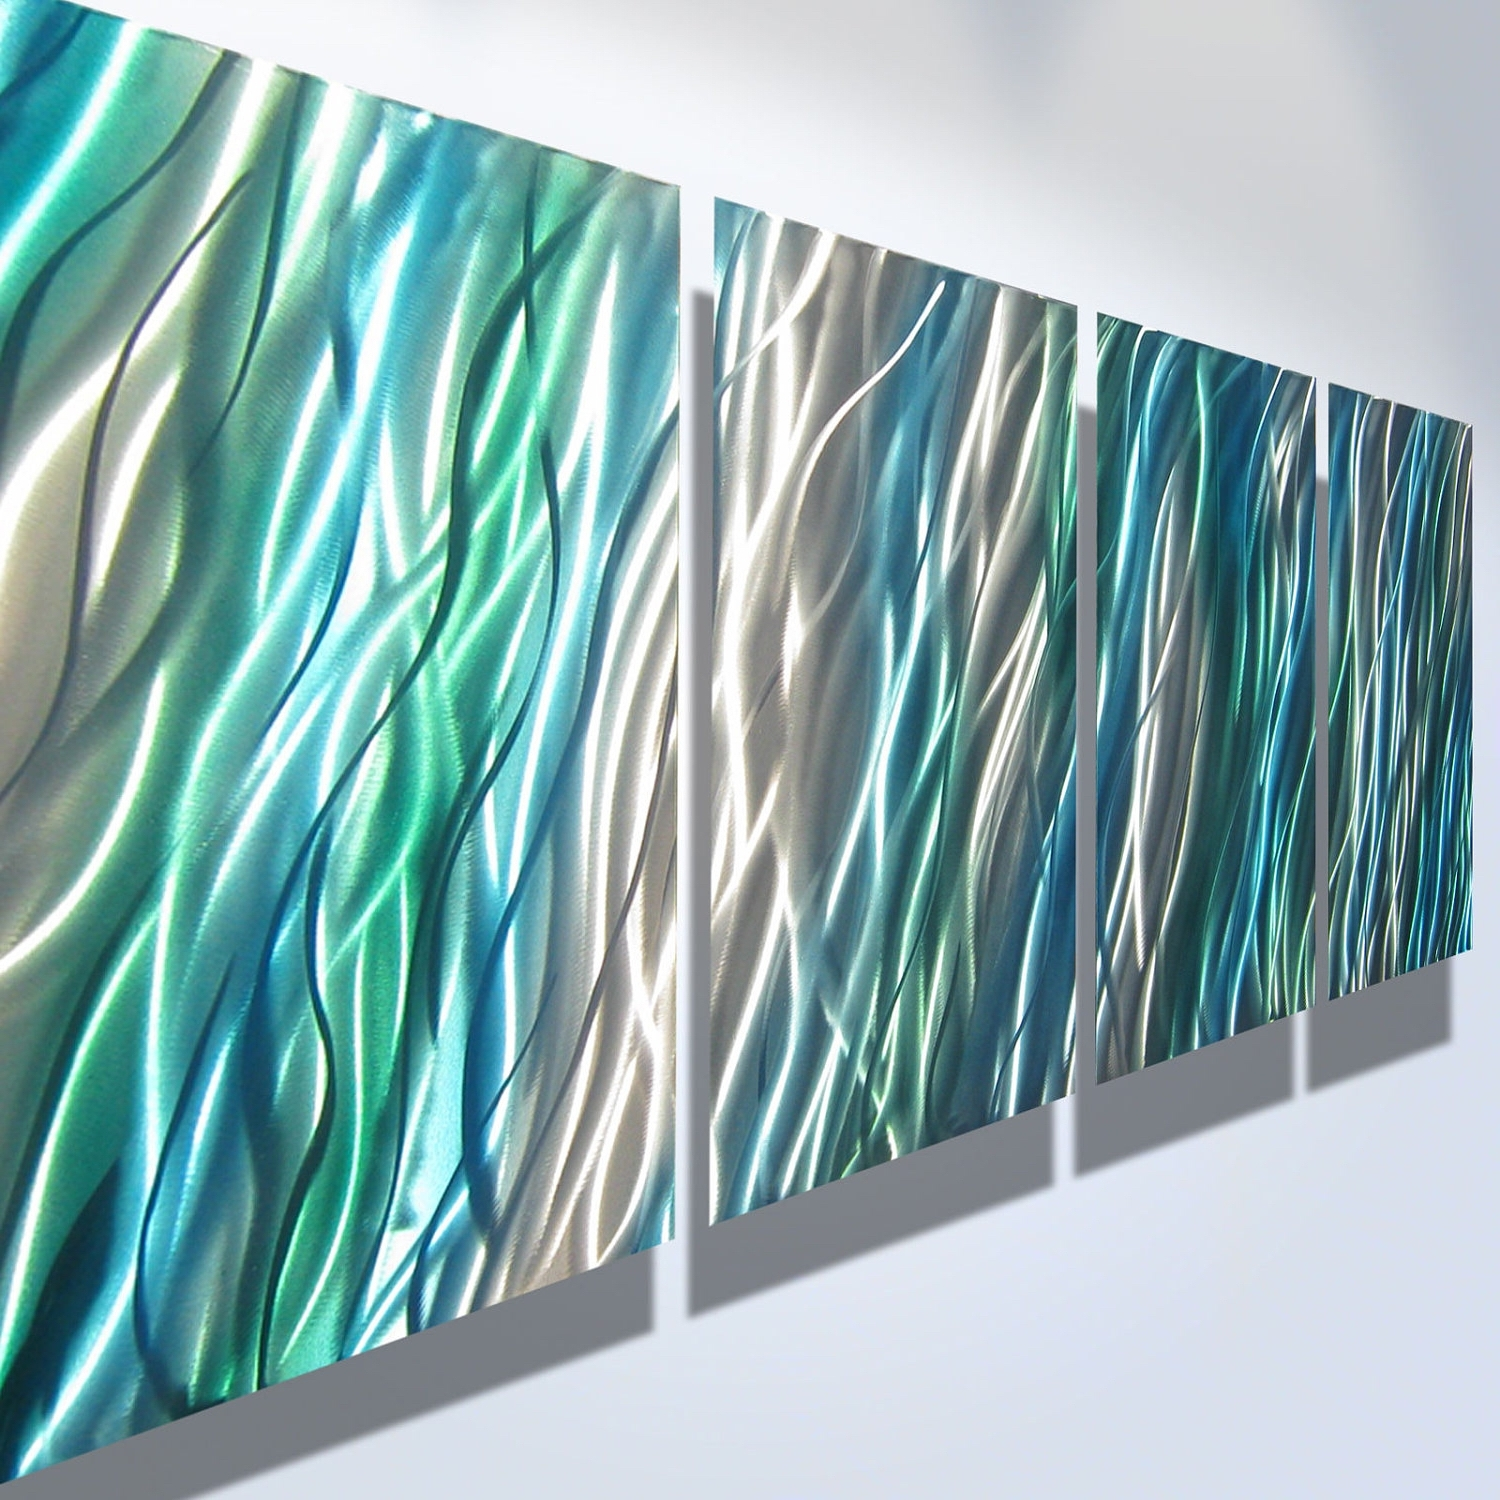 Turquoise Metal Wall Art In Most Popular Metal Wall Art Decor Abstract Contemporary Modern Sculpture (View 8 of 15)